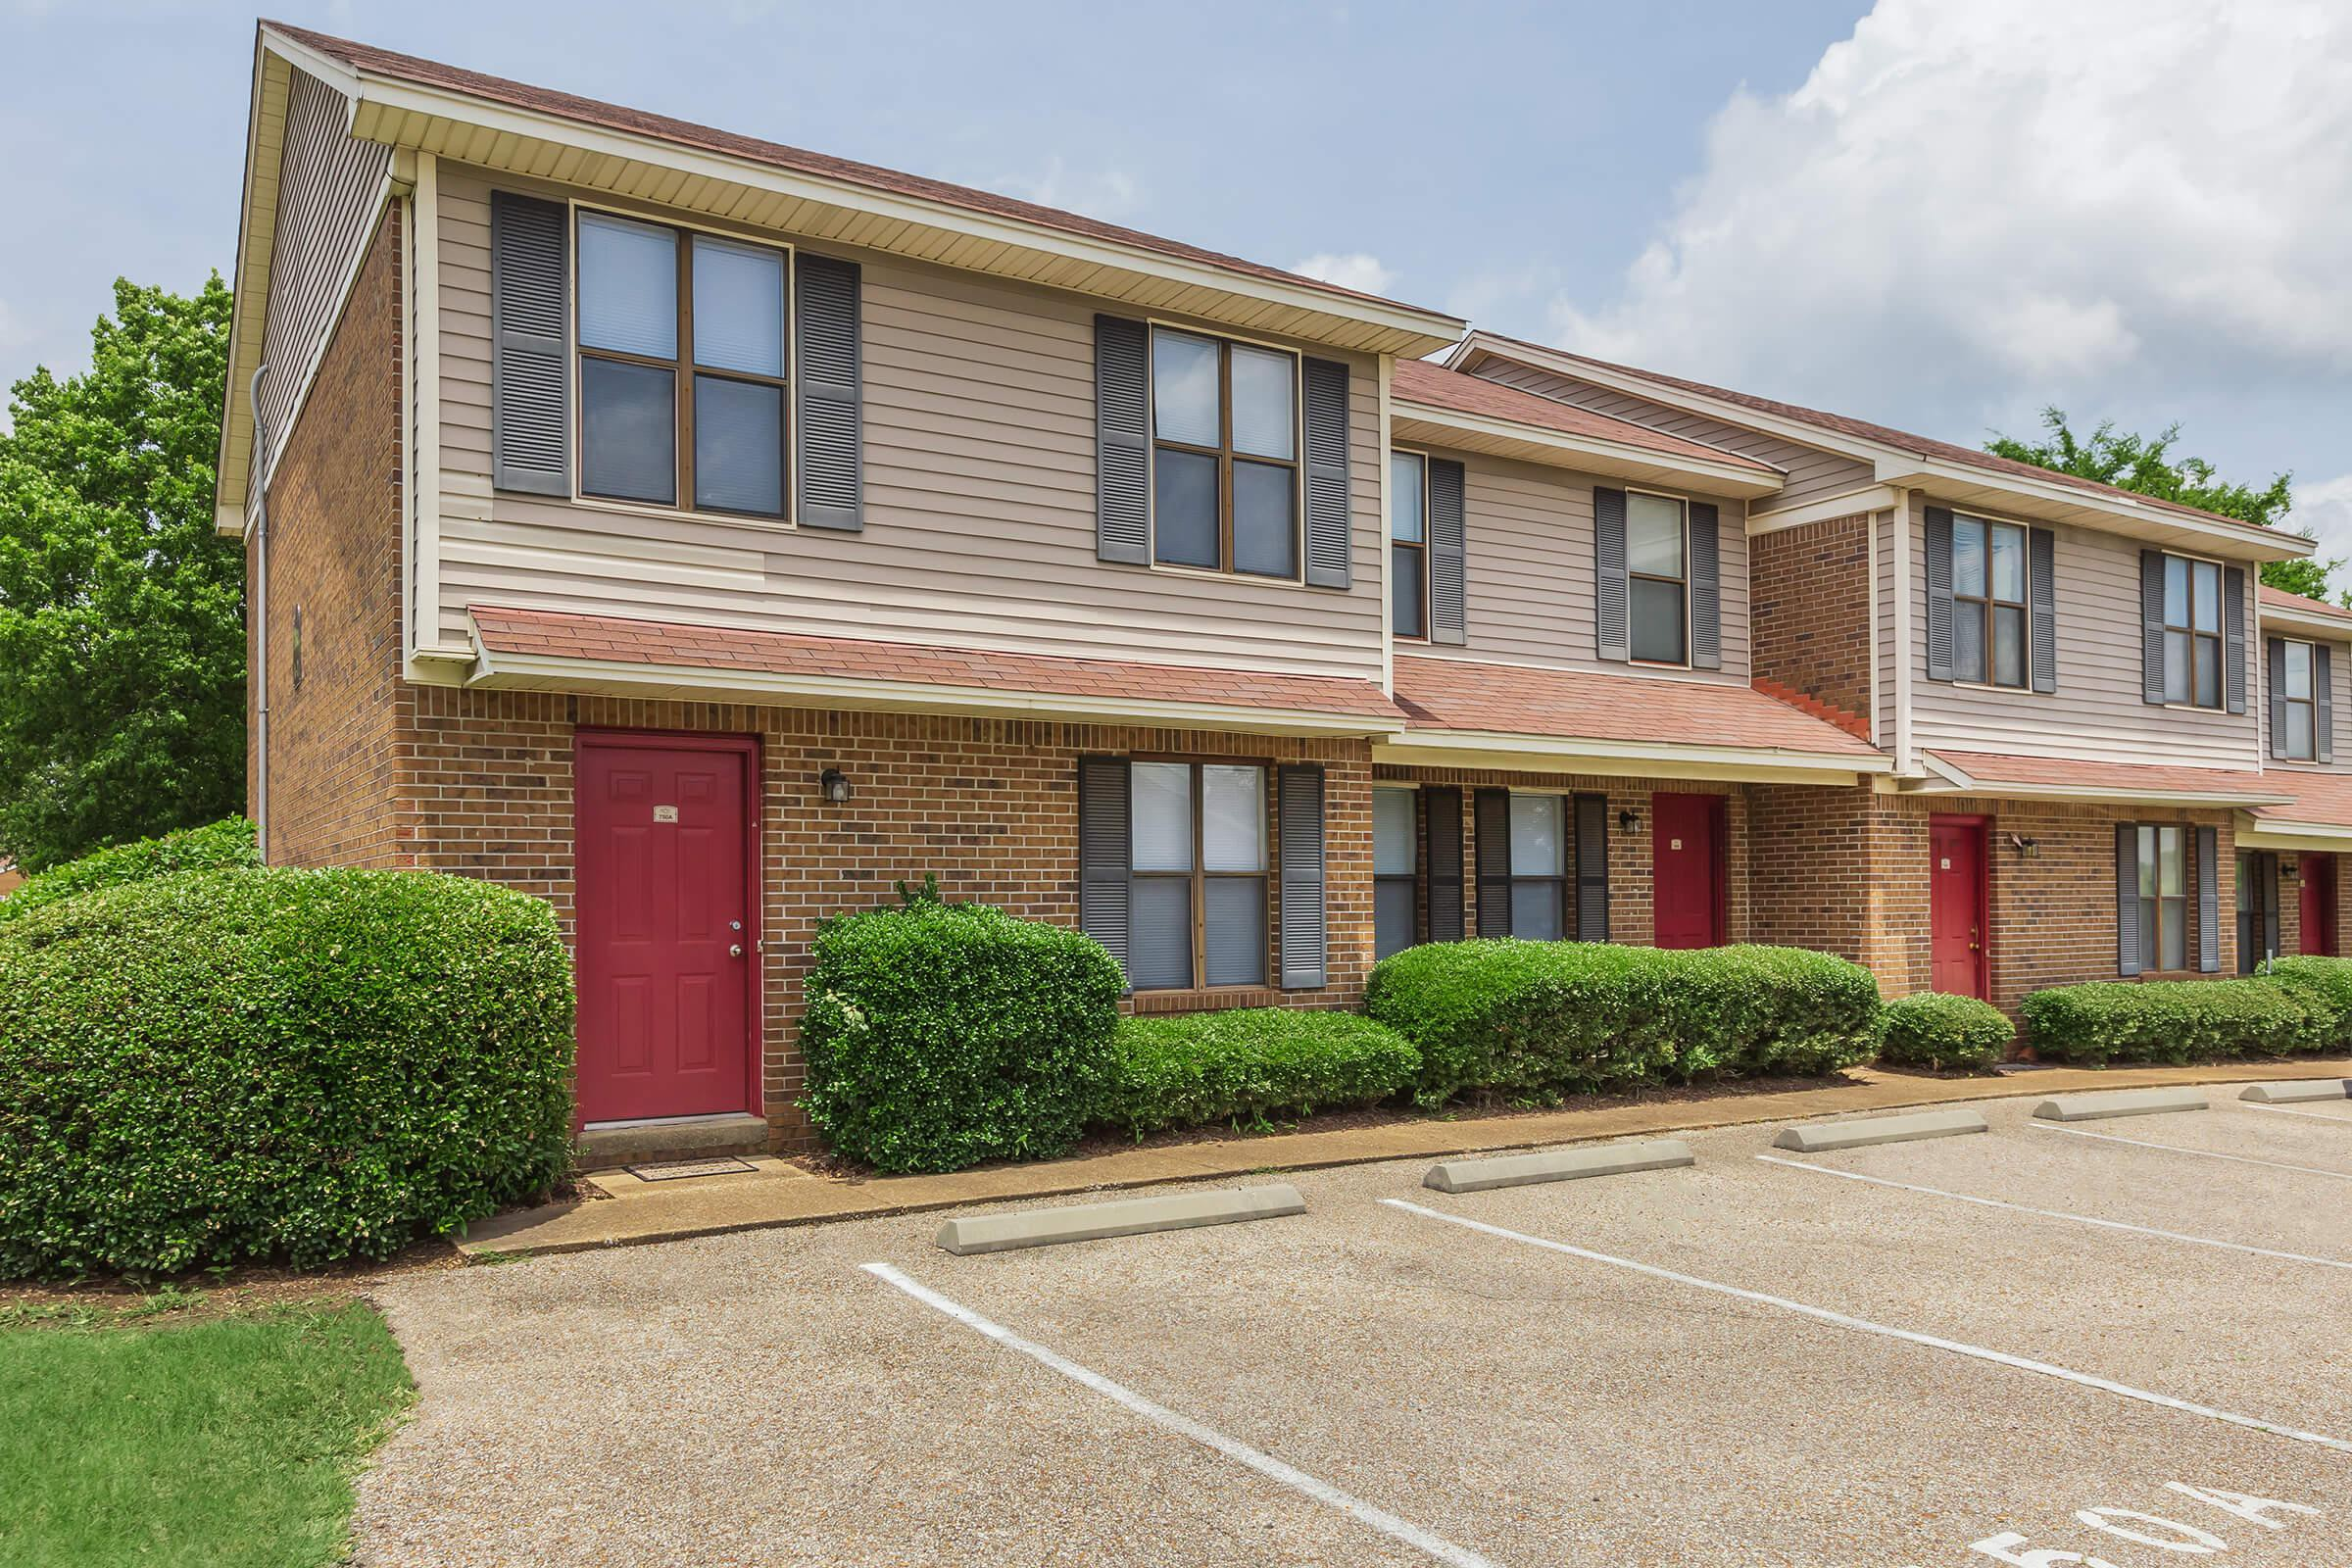 Apartments Near Lane University Village at Walker Road for Lane College Students in Jackson, TN